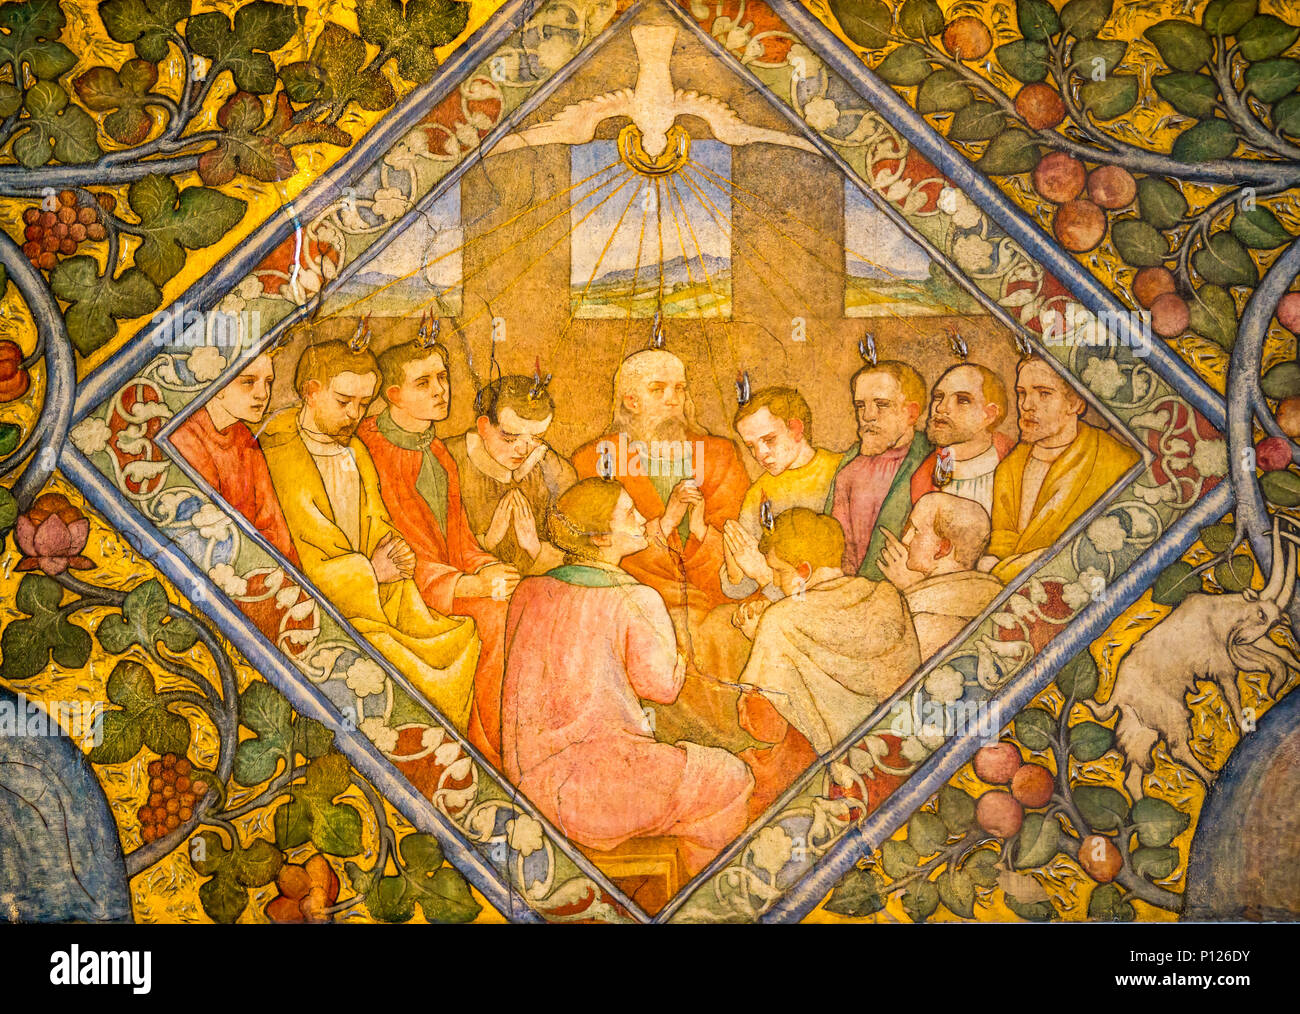 Pentecost scene disciples with tongues of fire, Holy Spirit as a dove by Phoebe Anna Traquair, Mansfield Traquair Centre, Edinburgh, Scotland, UK - Stock Image